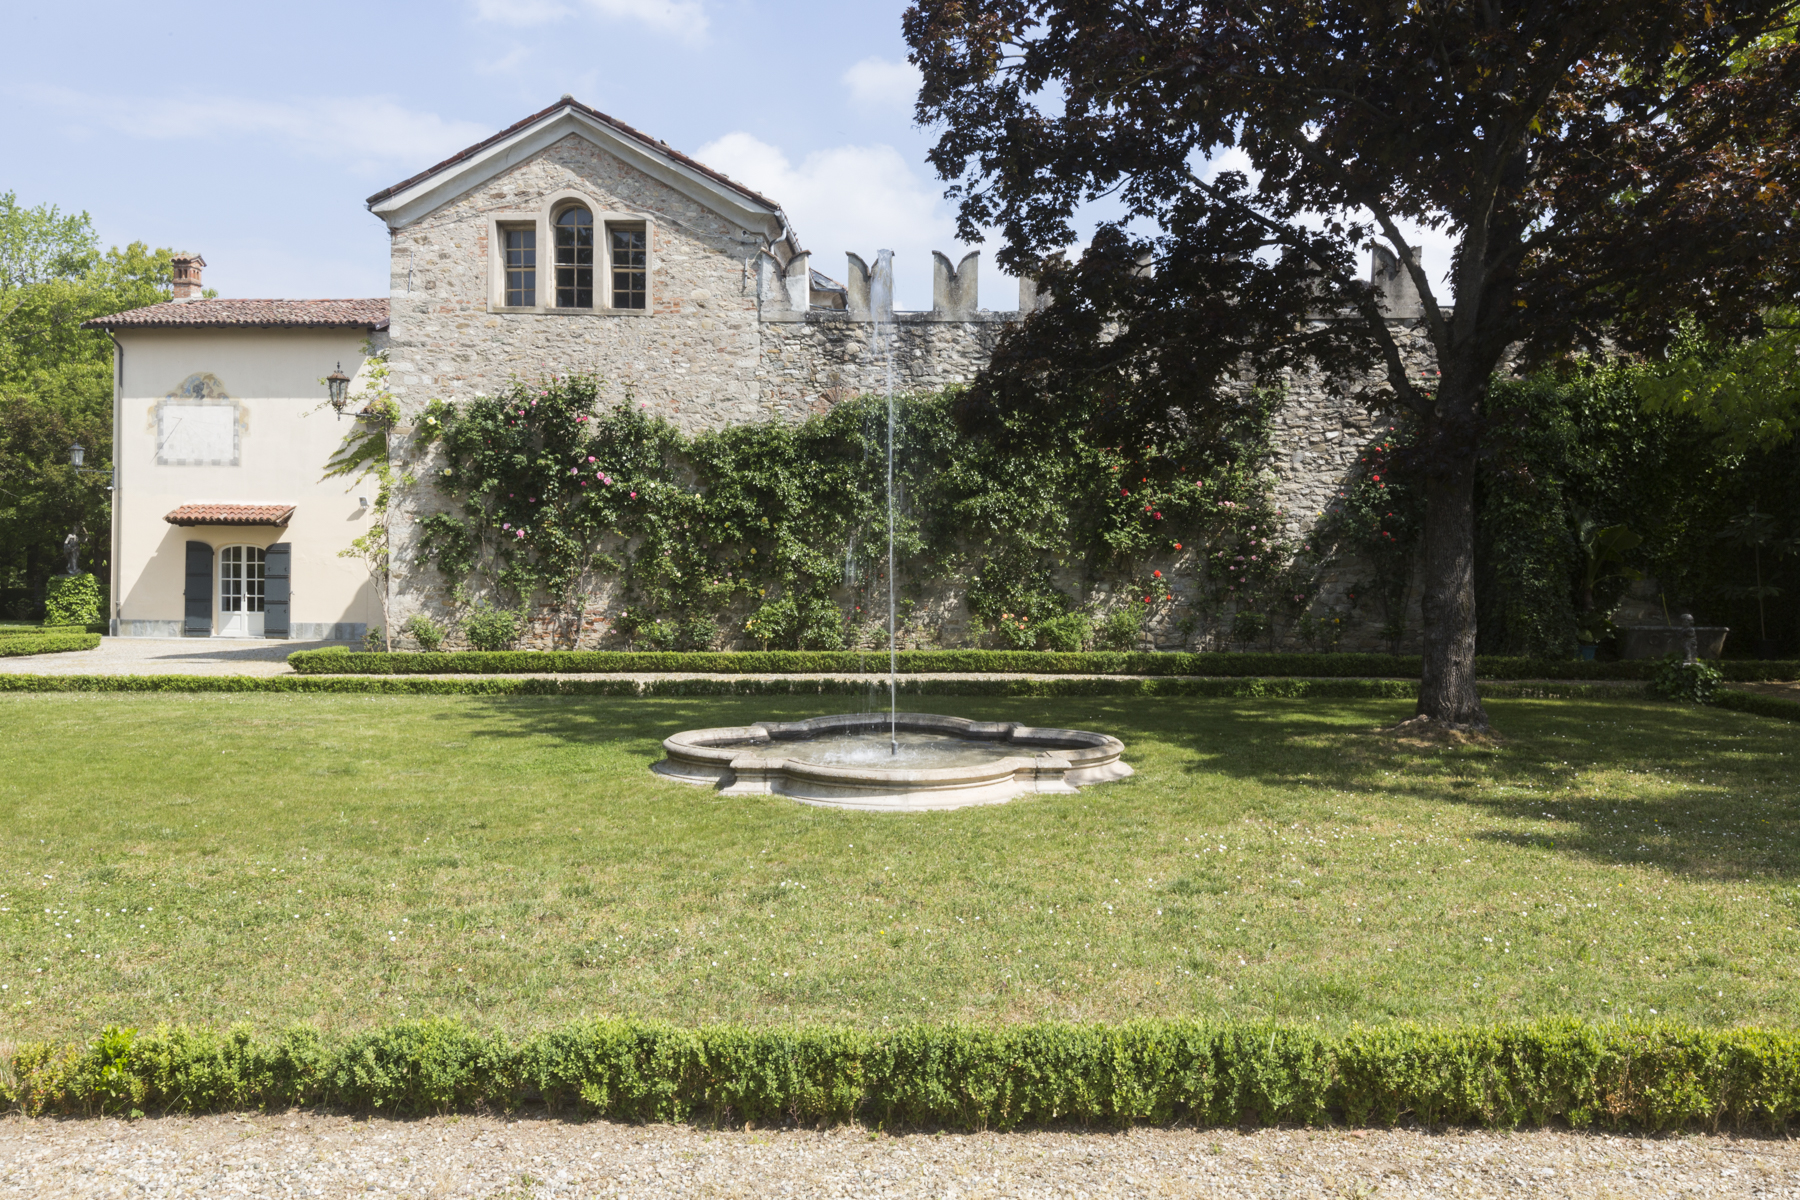 Additional photo for property listing at Timeless medieval castle surrounded by green Borghetto Borbera, Alessandria Italien